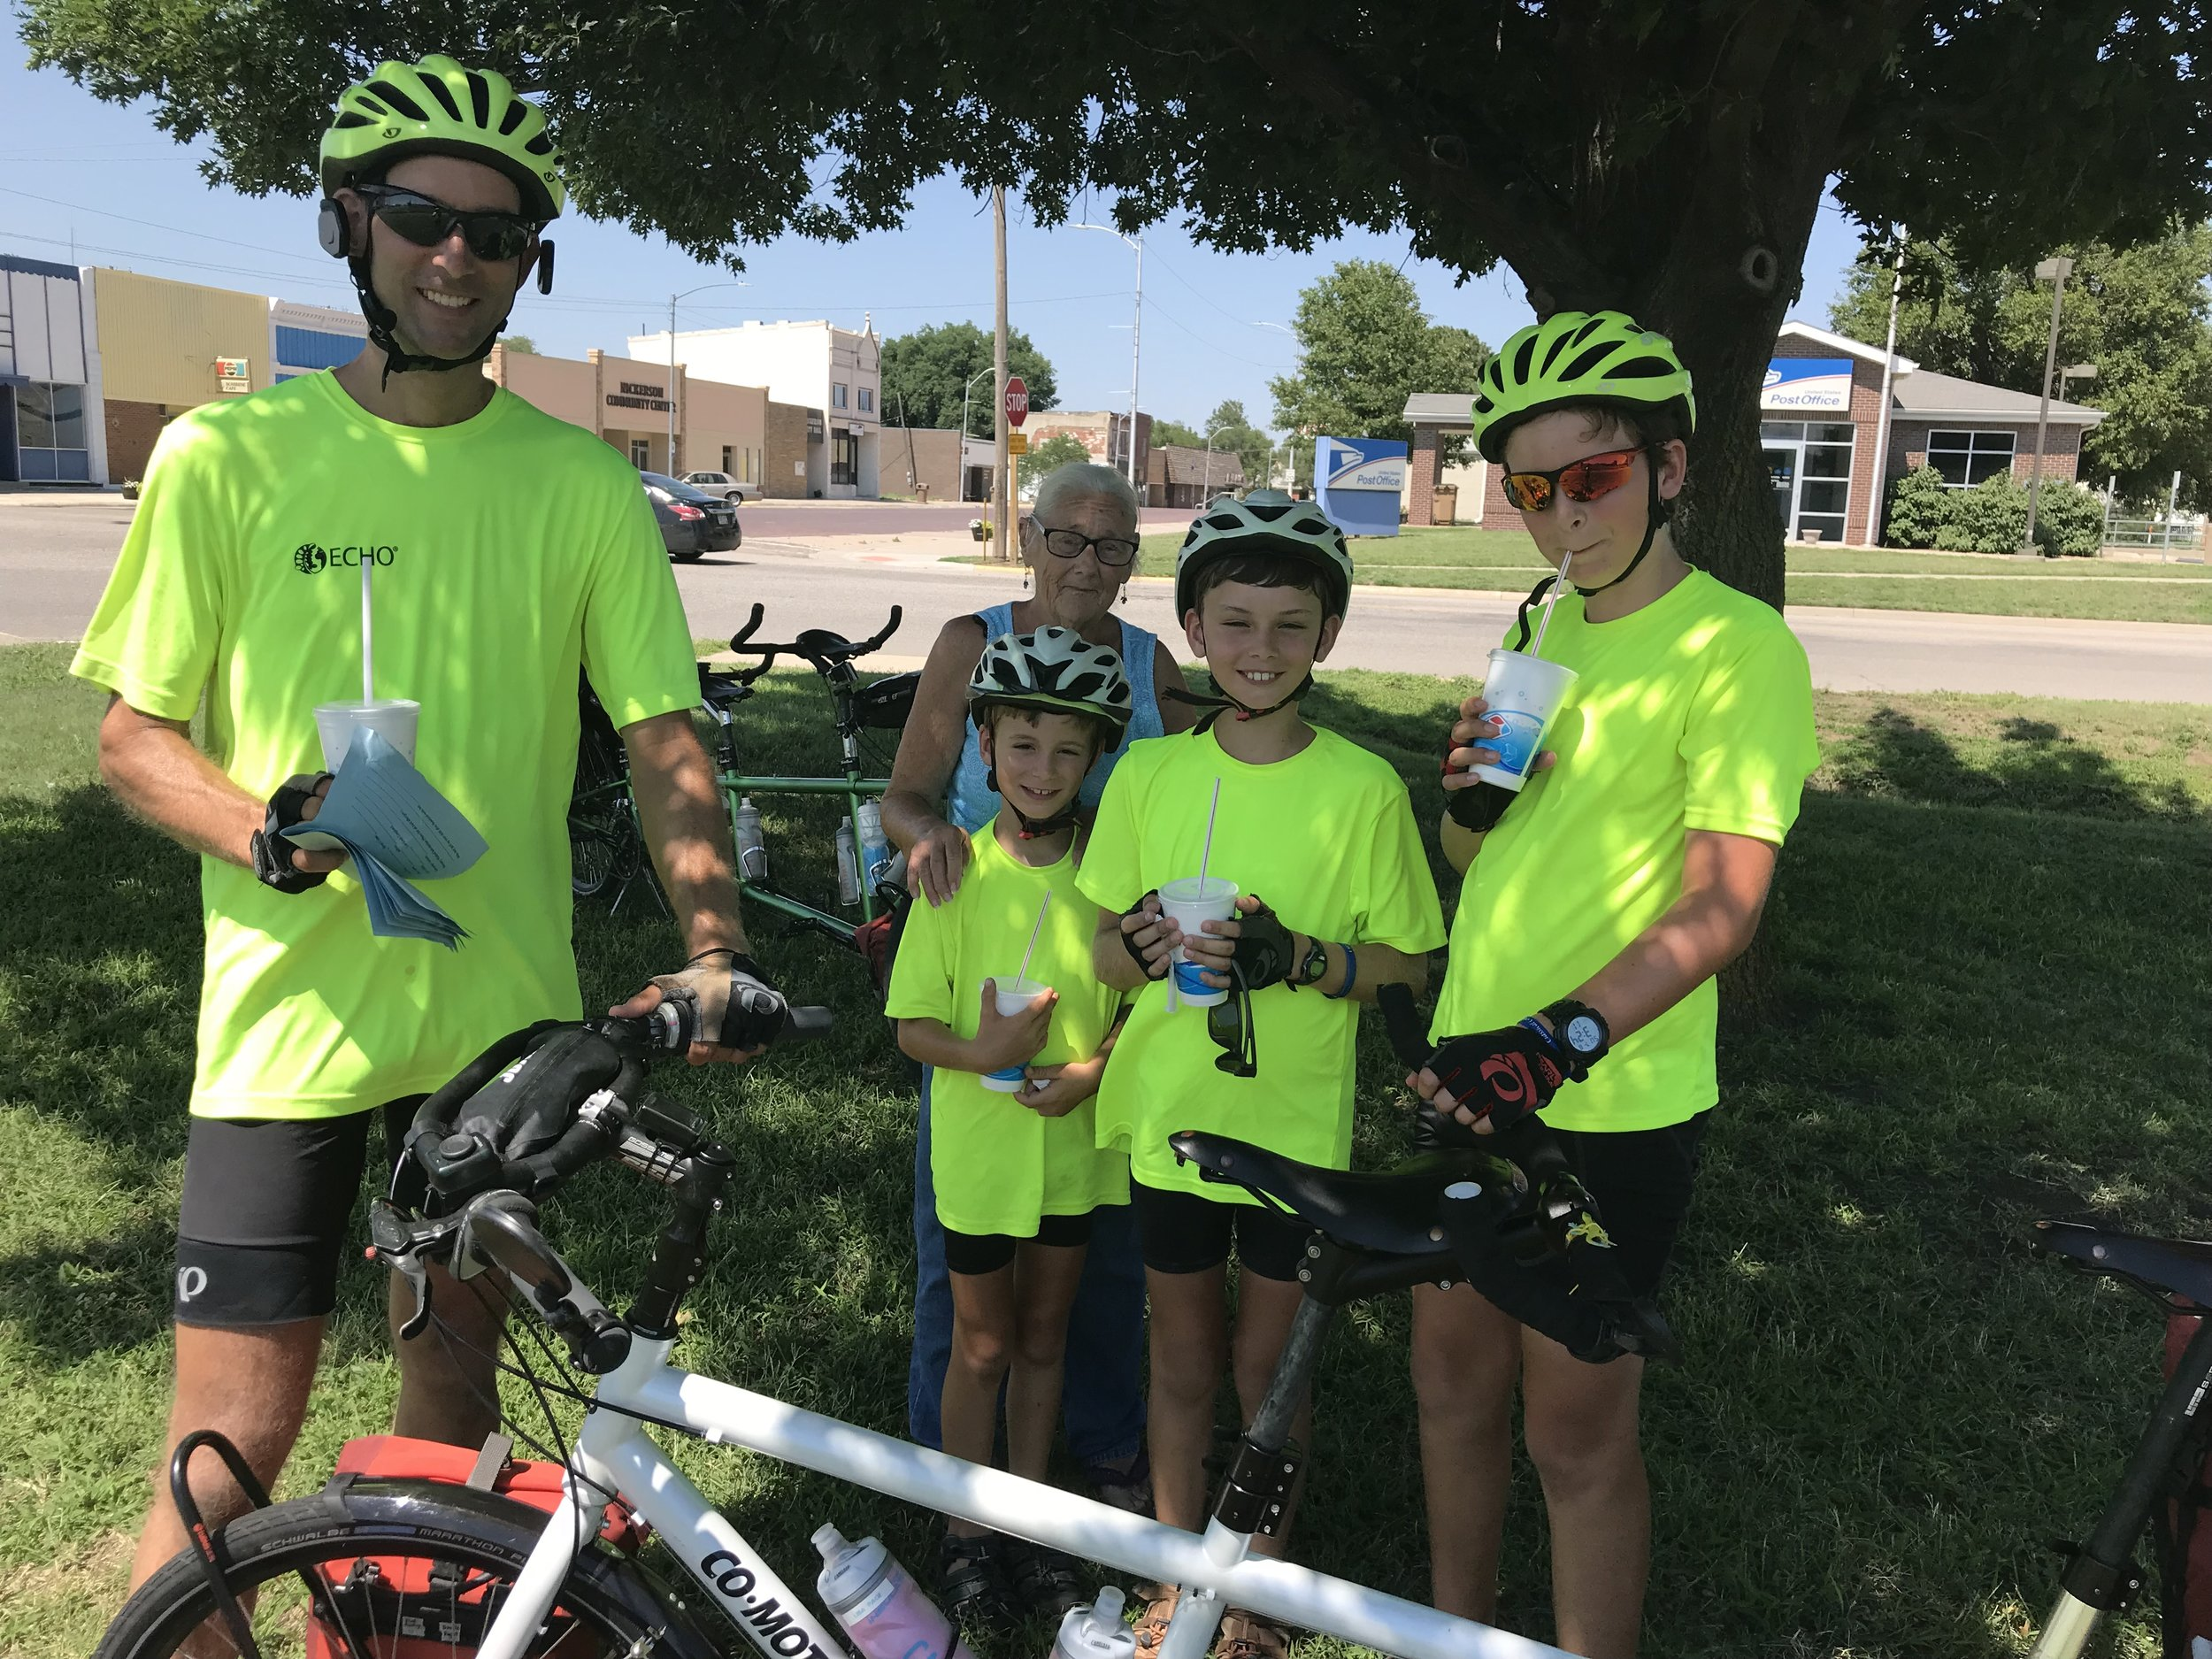 As we were passing through the town of Nickerson, KS, we stopped for a snack break under the shade of a tree. A sweet woman quickly approached us to welcome us to the town and let us know of all the town has to offer. As we were about to finish up, she returned with ice water for each of us. What kindness!